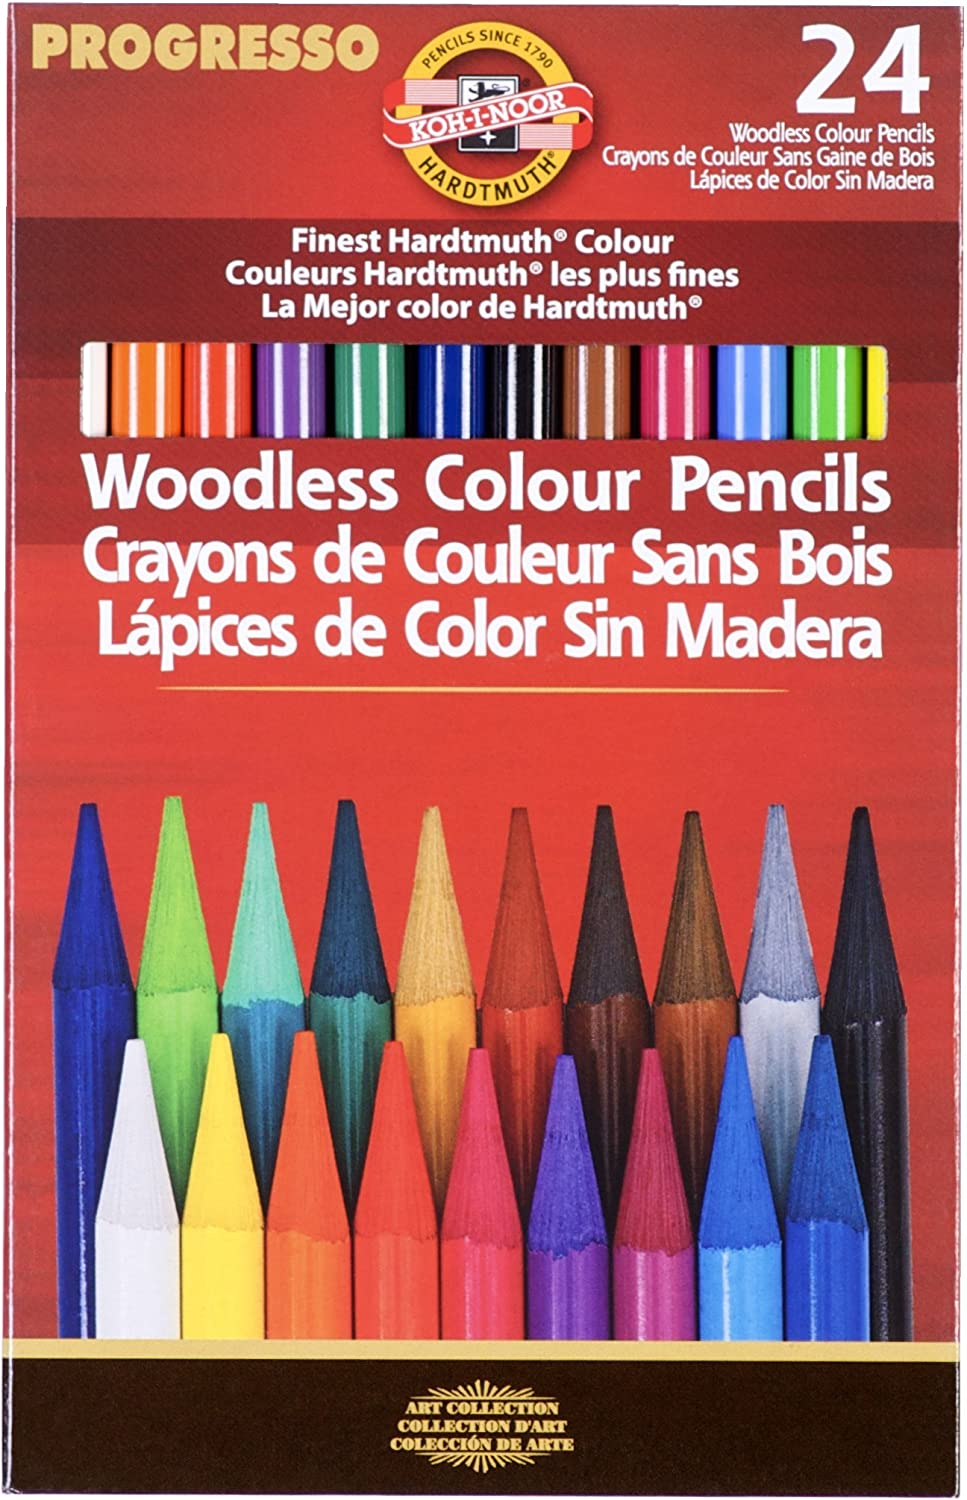 Koh-I-Noor Non-Toxic Woodless Graphite Pencil Assorted Tip Set of 12 Black